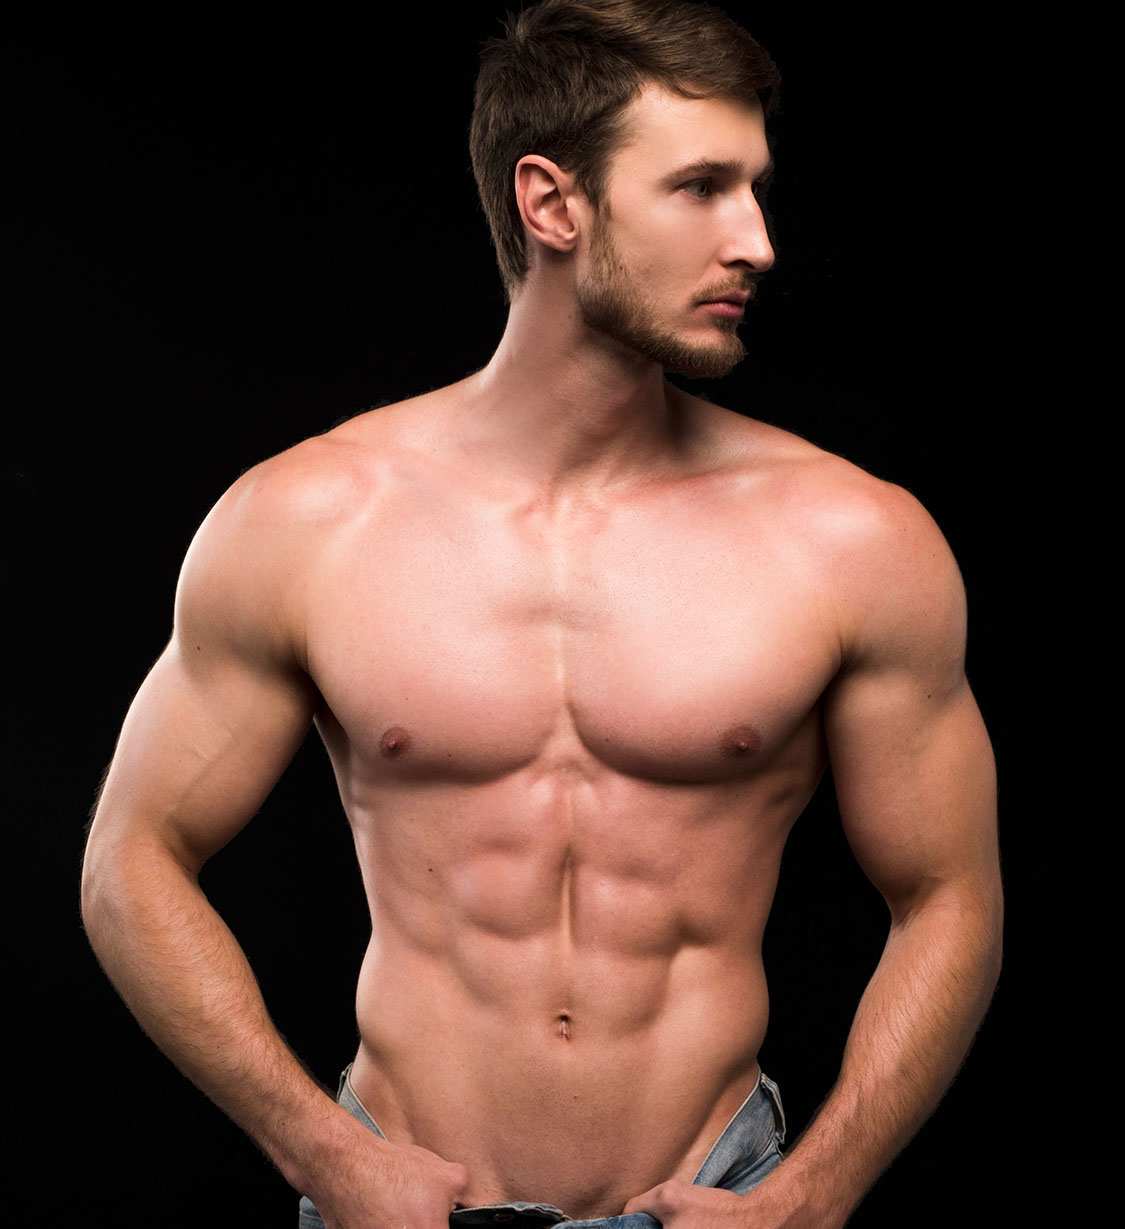 Young handsome mans upper muscular bare torso and face